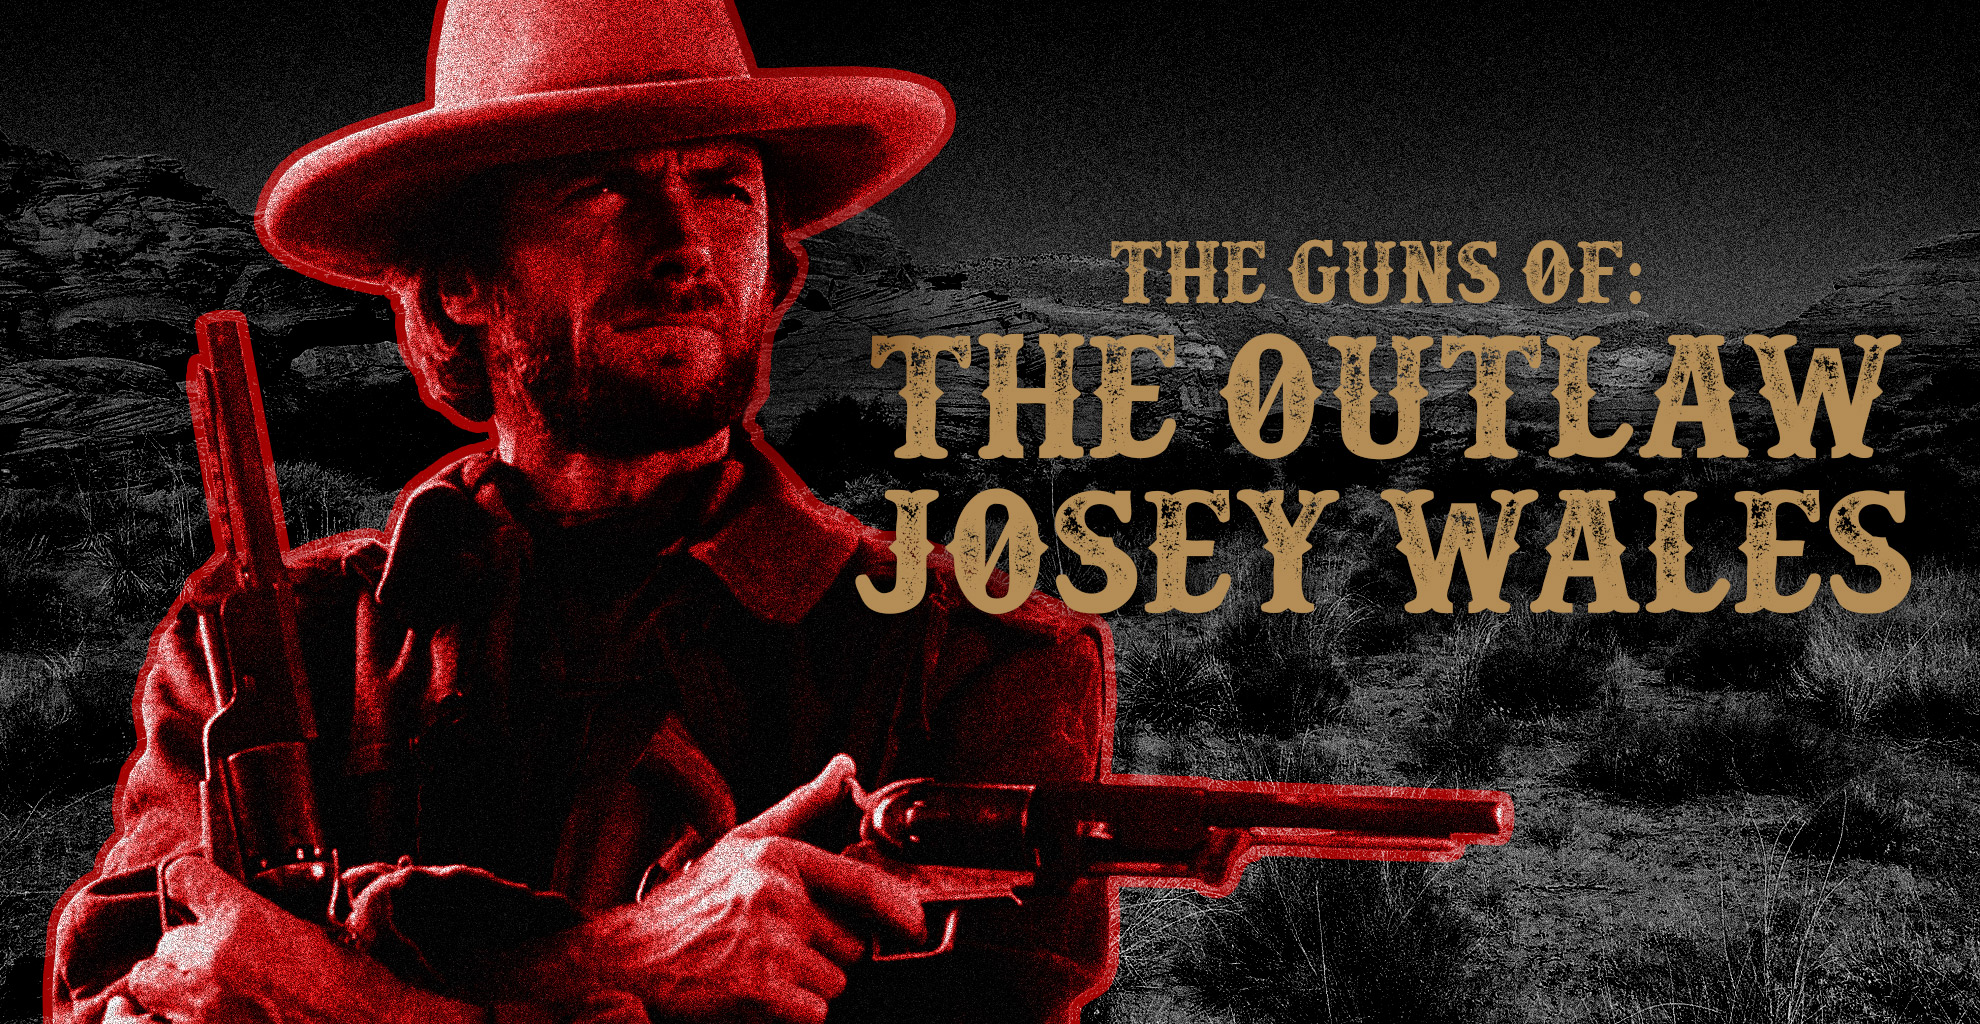 a photo of the outlaw josey Wales with a gun